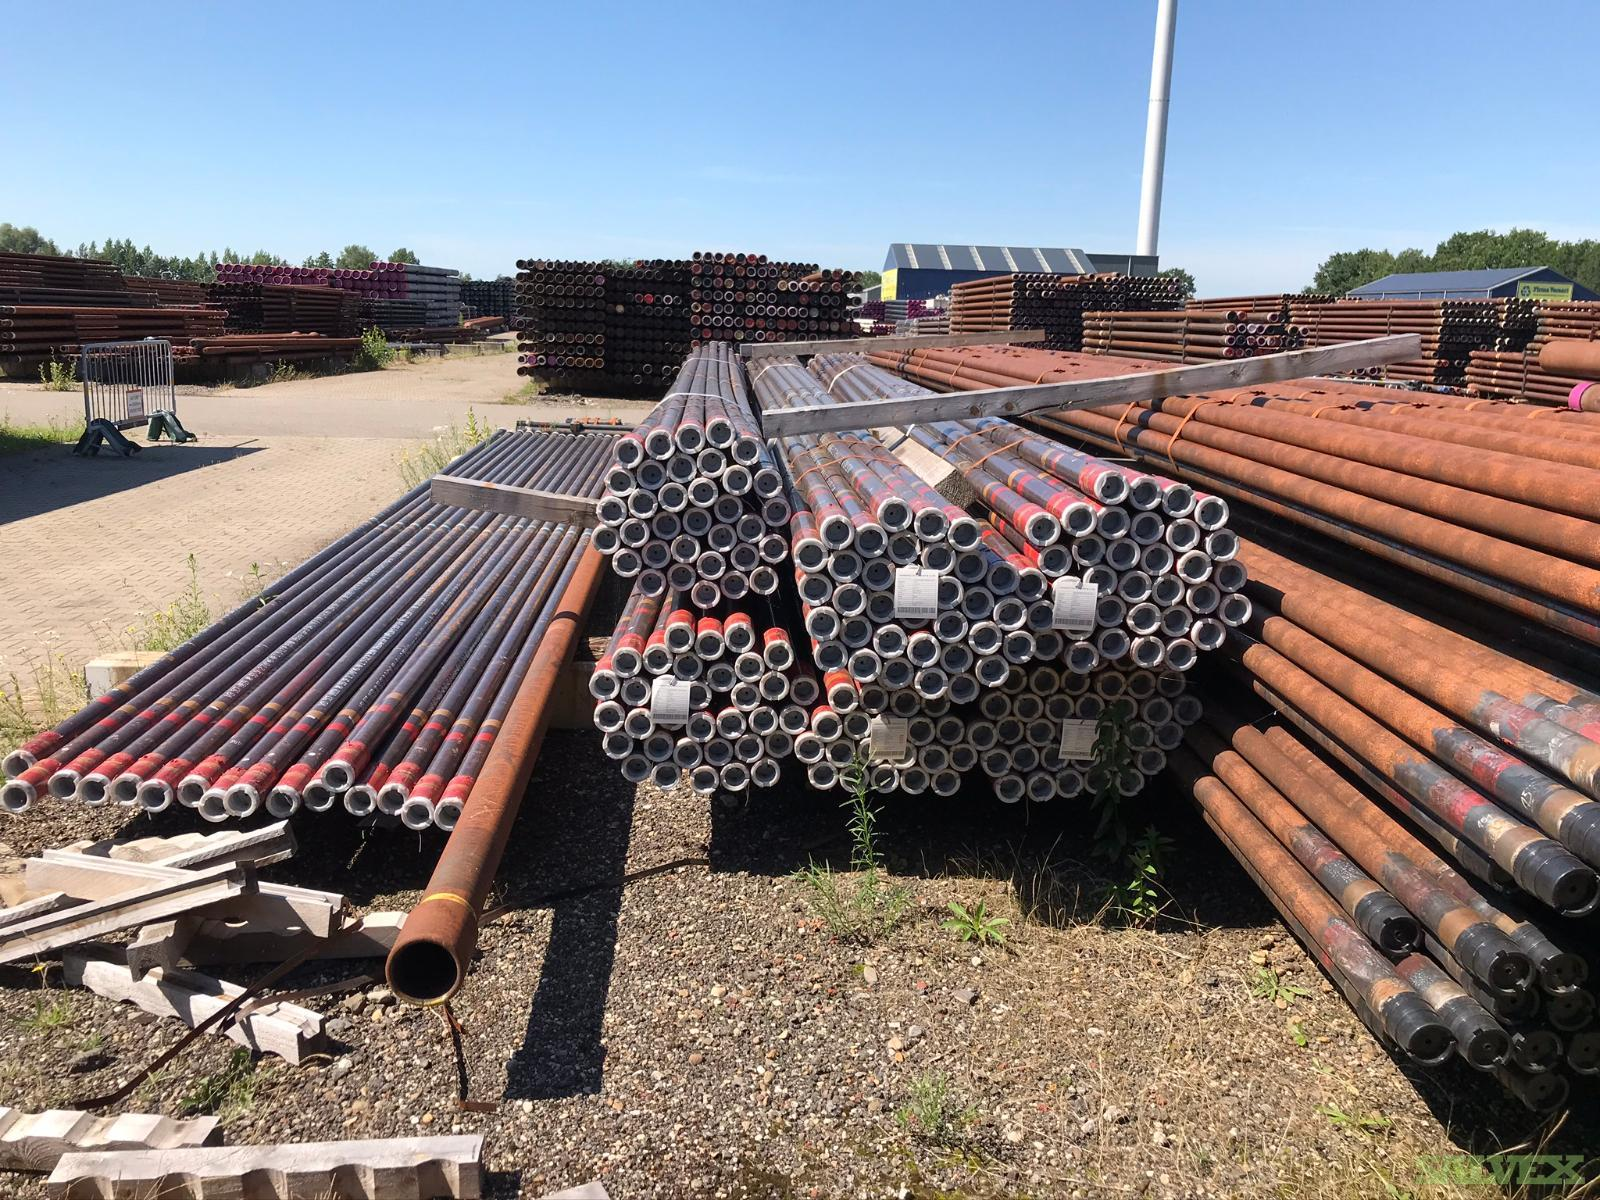 2 7/8 6.40# 13CR C95 TS8 TK R2 Surplus Tubing (3,600 Feet / 10 Metric Tons)